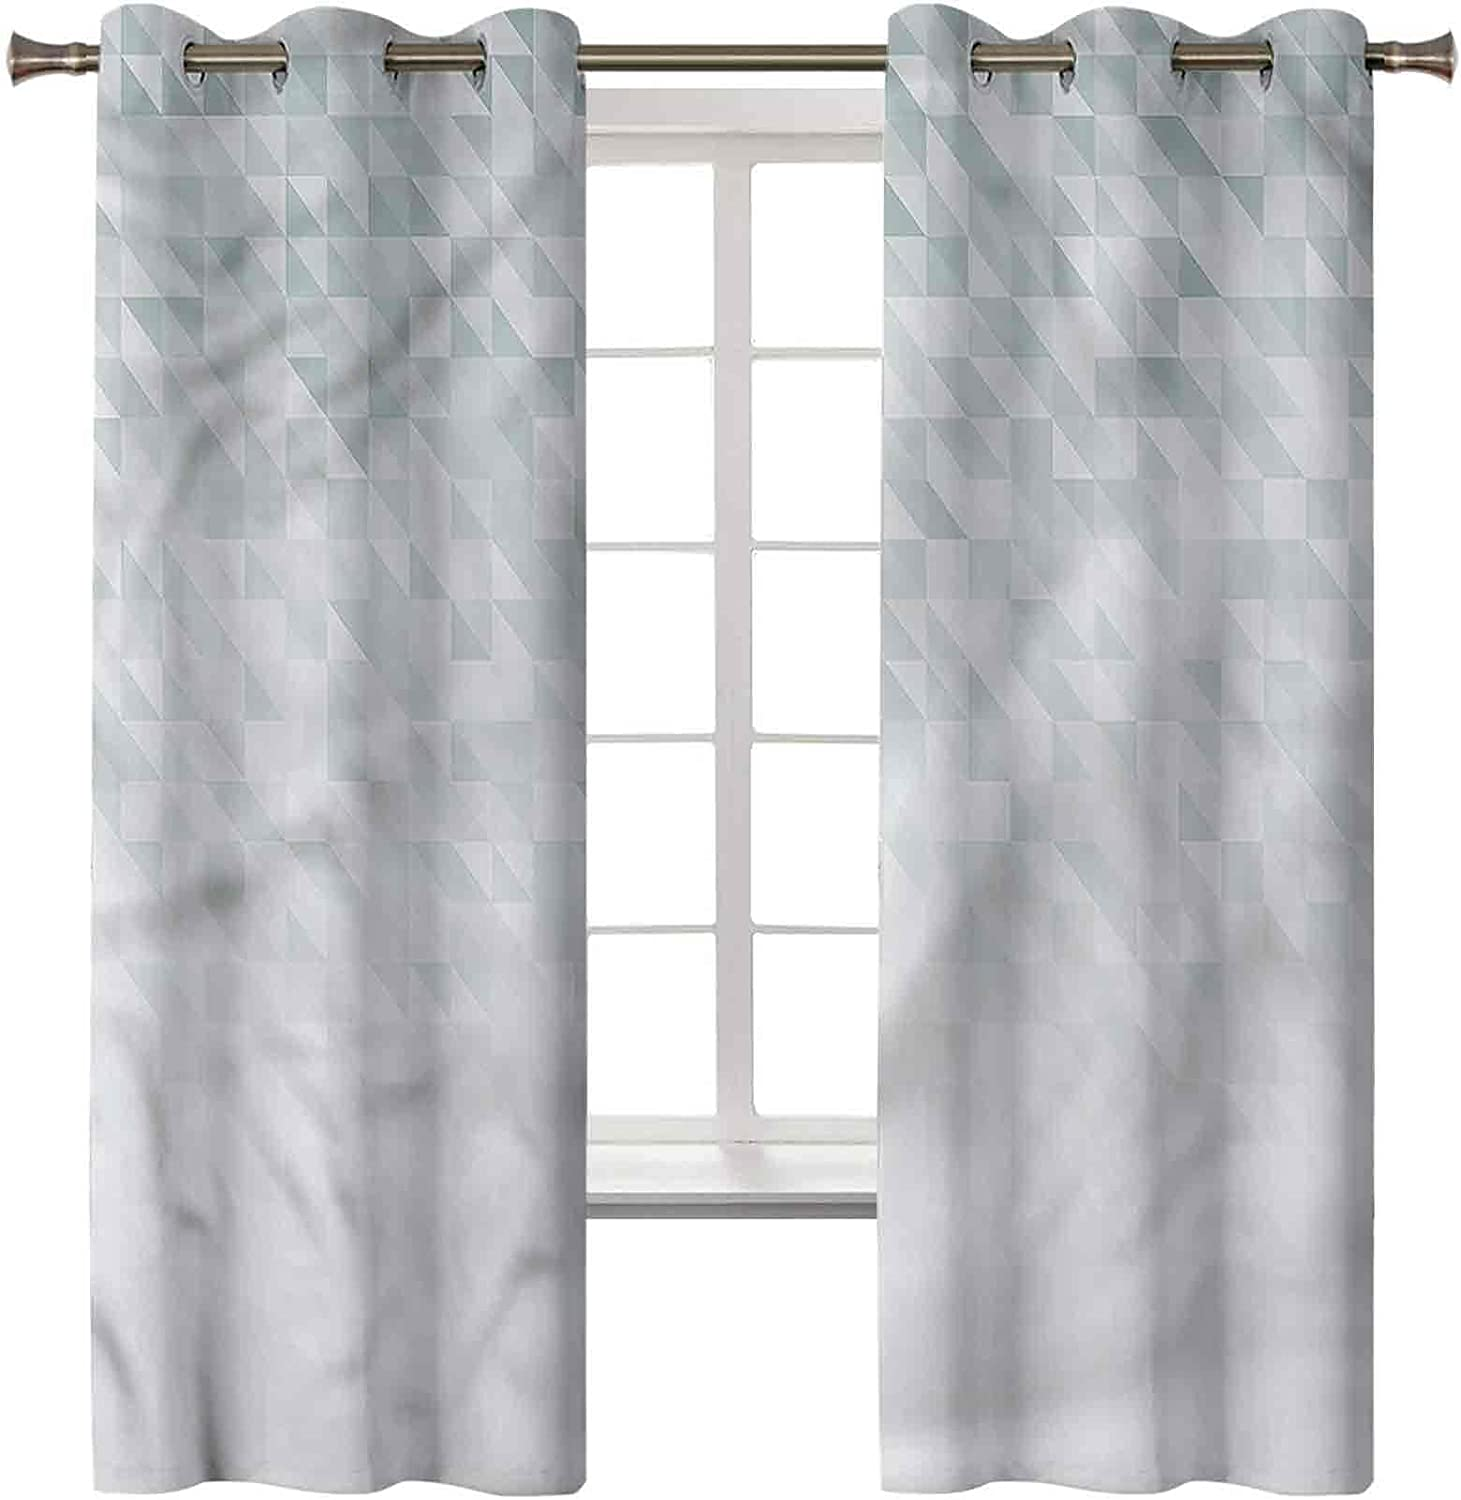 Grey Black Out Curtains Set of 2 Ranking TOP1 x Panels Pr Sound cheap 38W 45L Inch